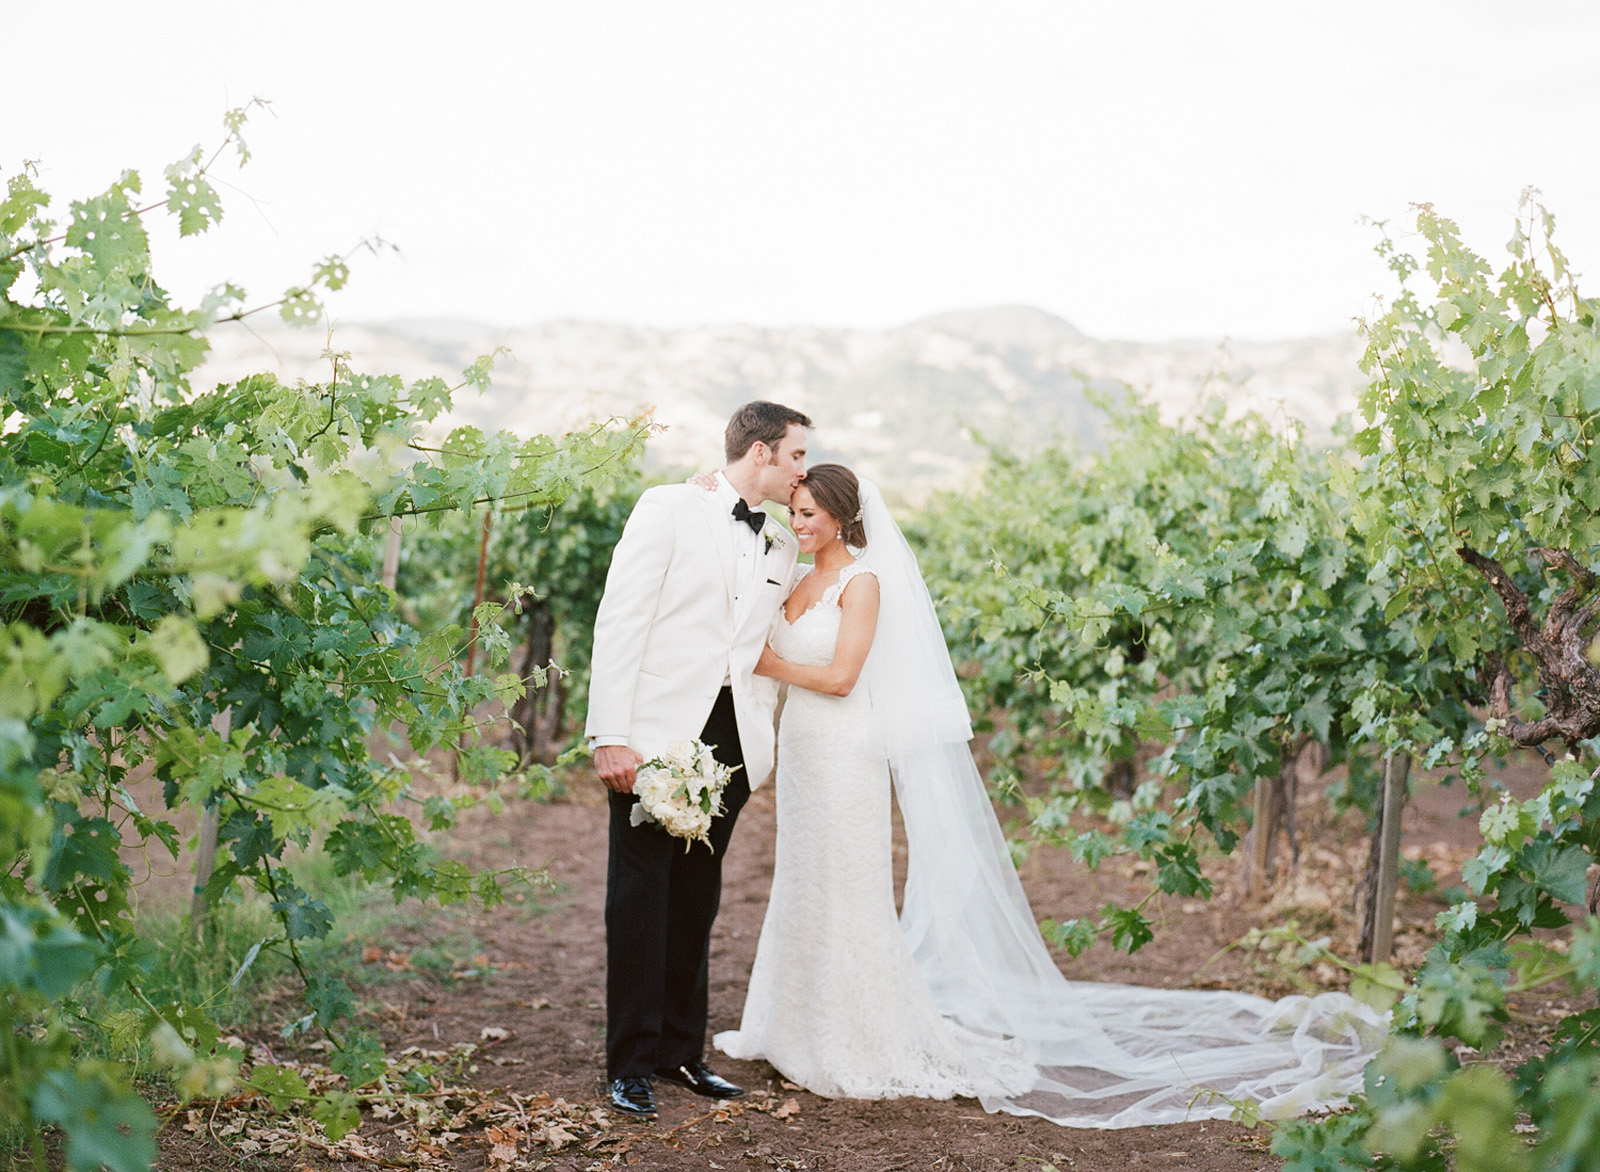 Wedding Planning by Cole Drake Events. Photo by Sylvie Gil Photography.